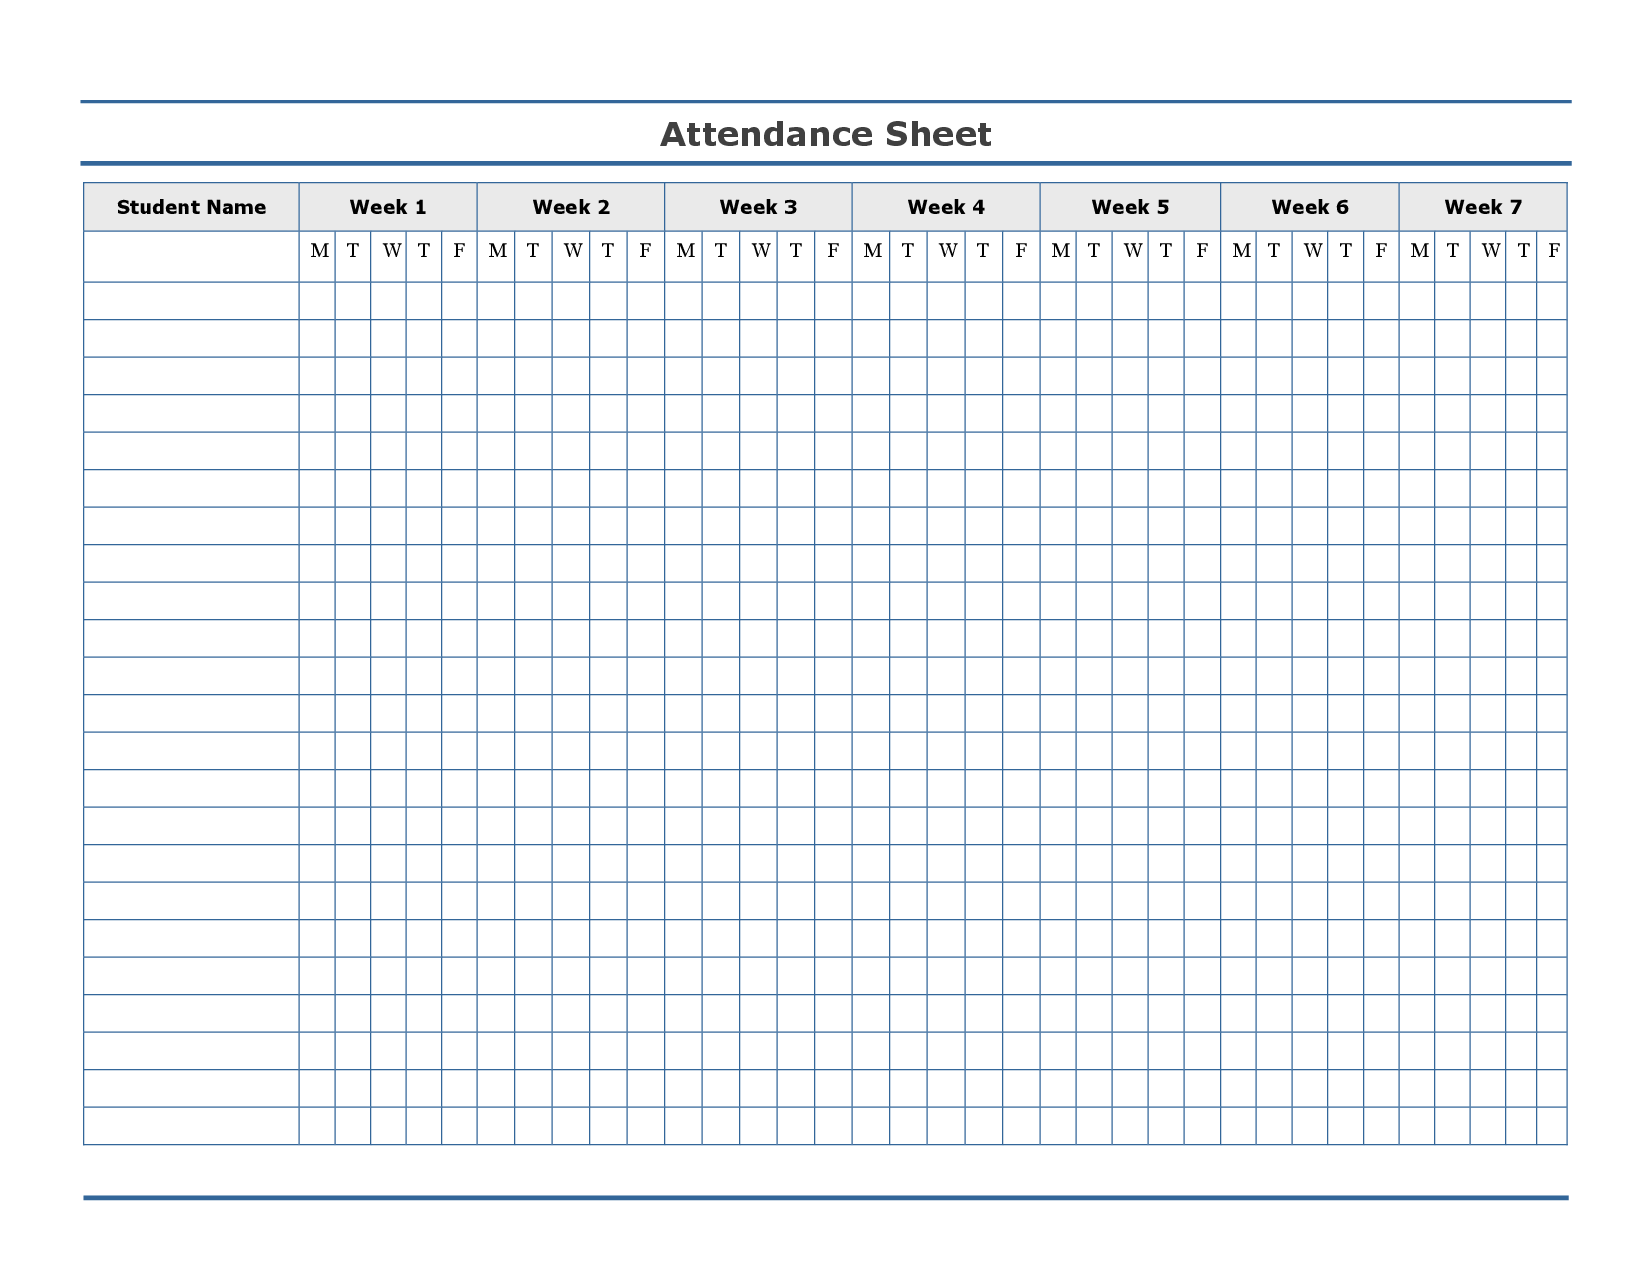 photograph regarding Attendance Sheet Printable referred to as Absolutely free Printable Attendance Sheet Template  Schooling